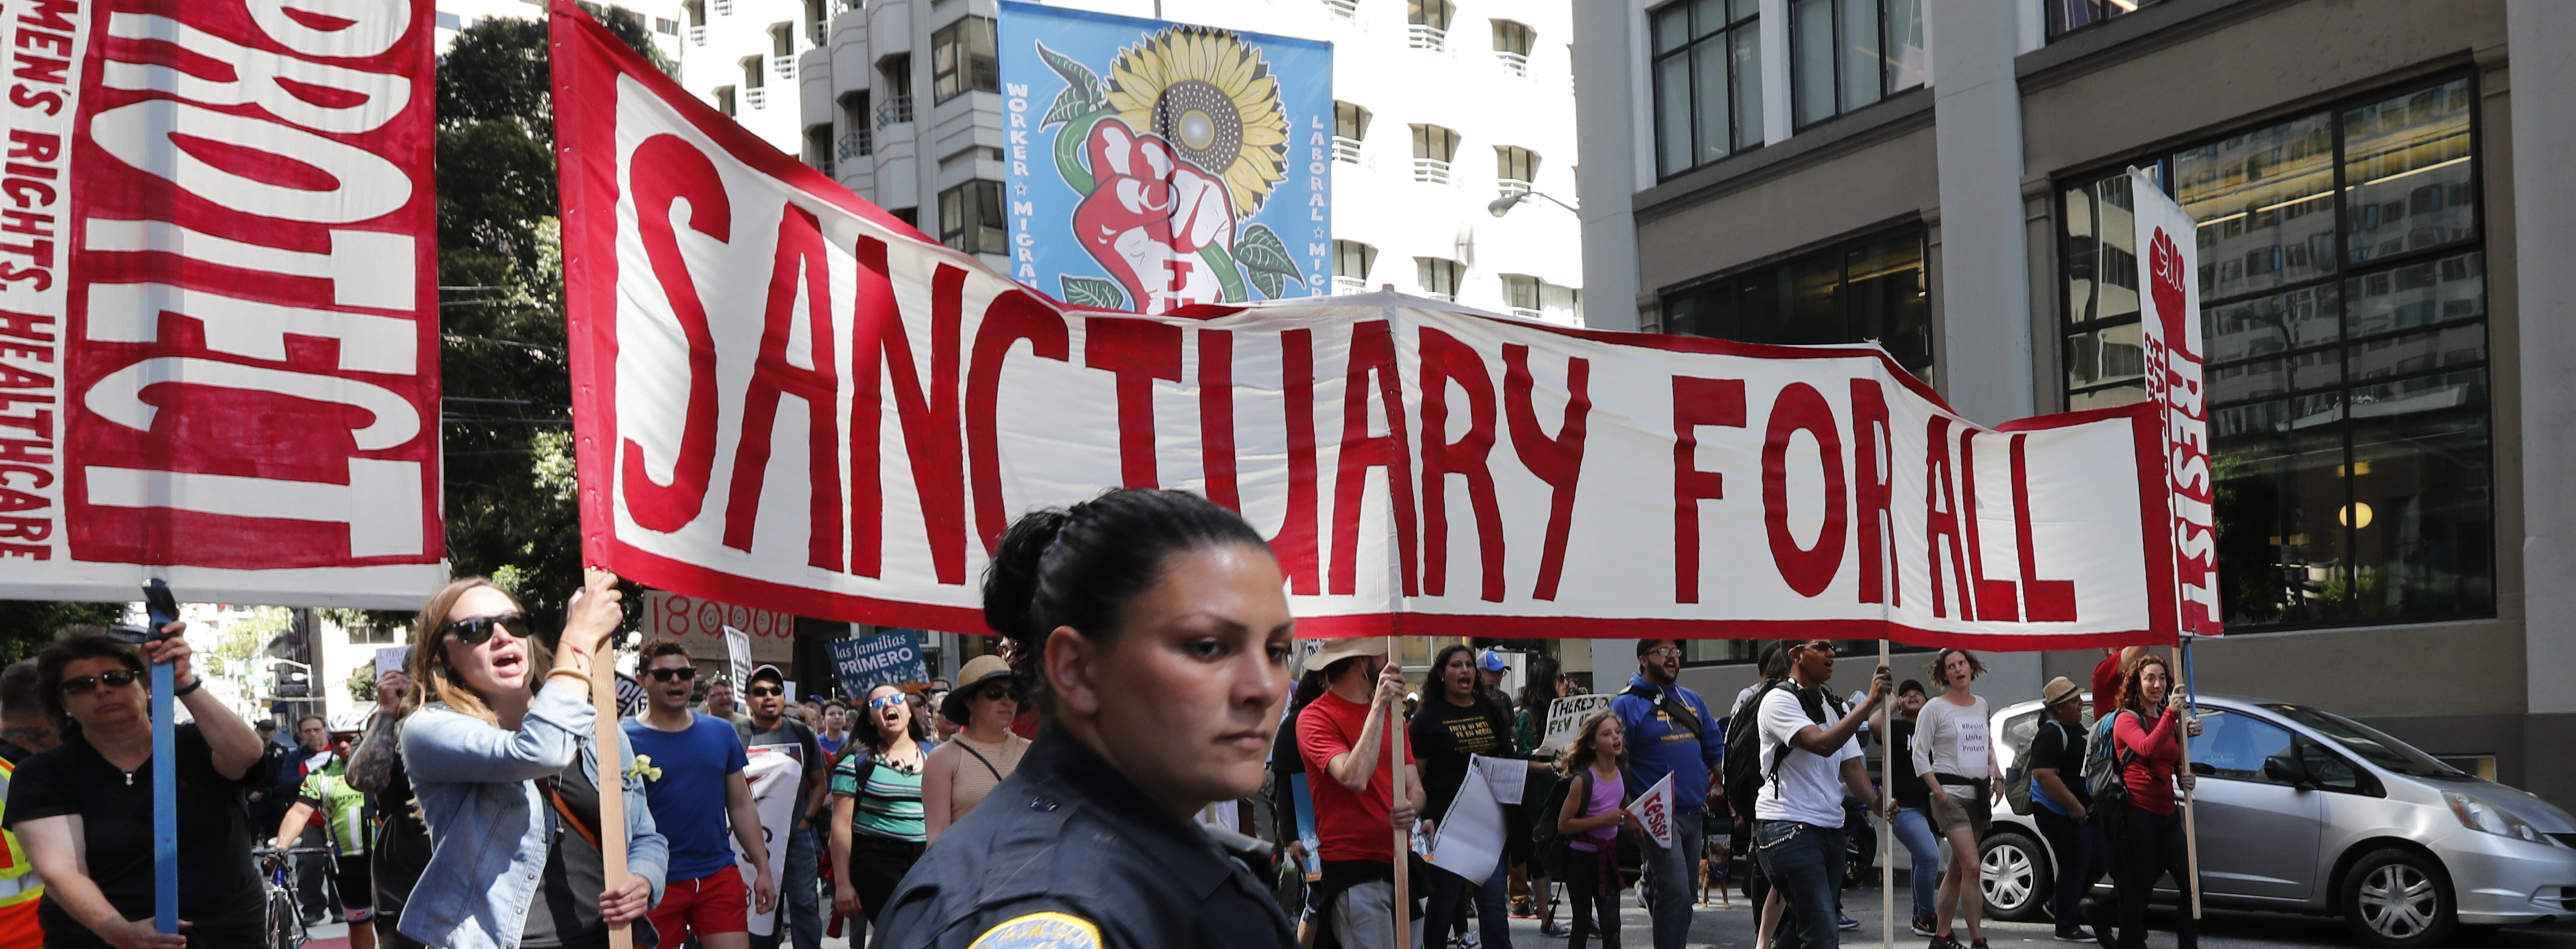 Thousands protest against Trump's immigration policies